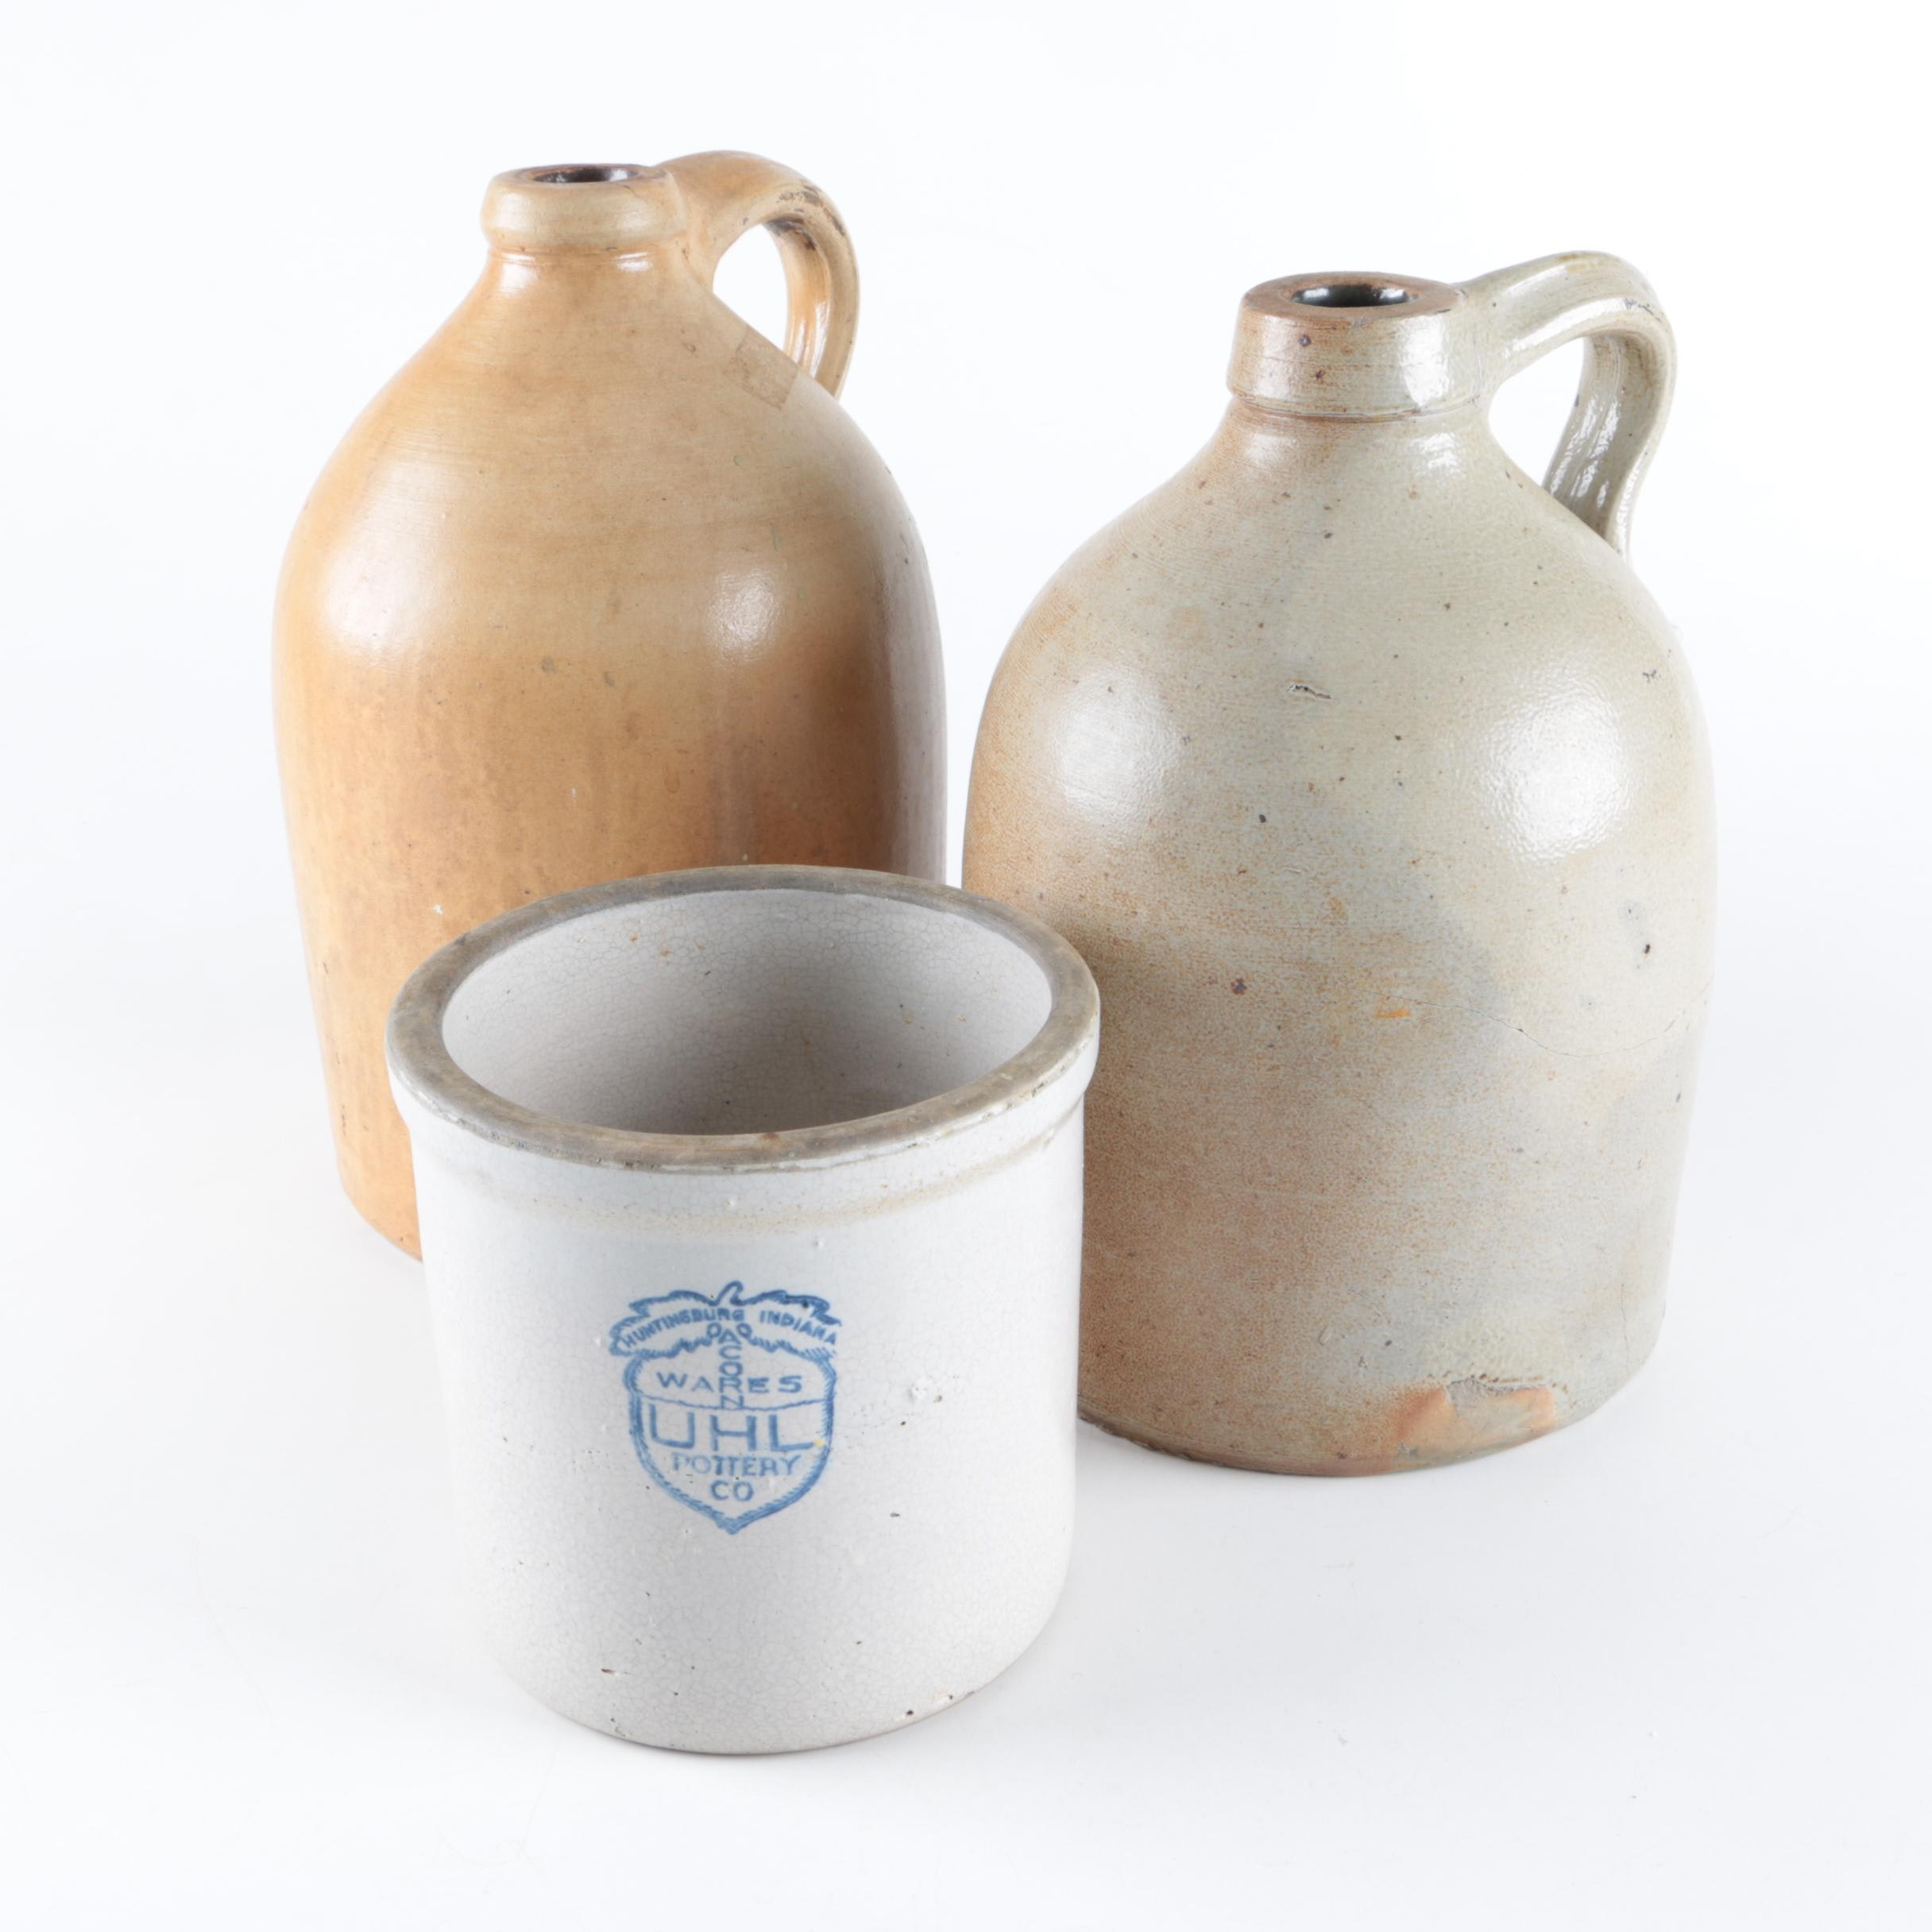 Stoneware Crock and Jugs including UHL